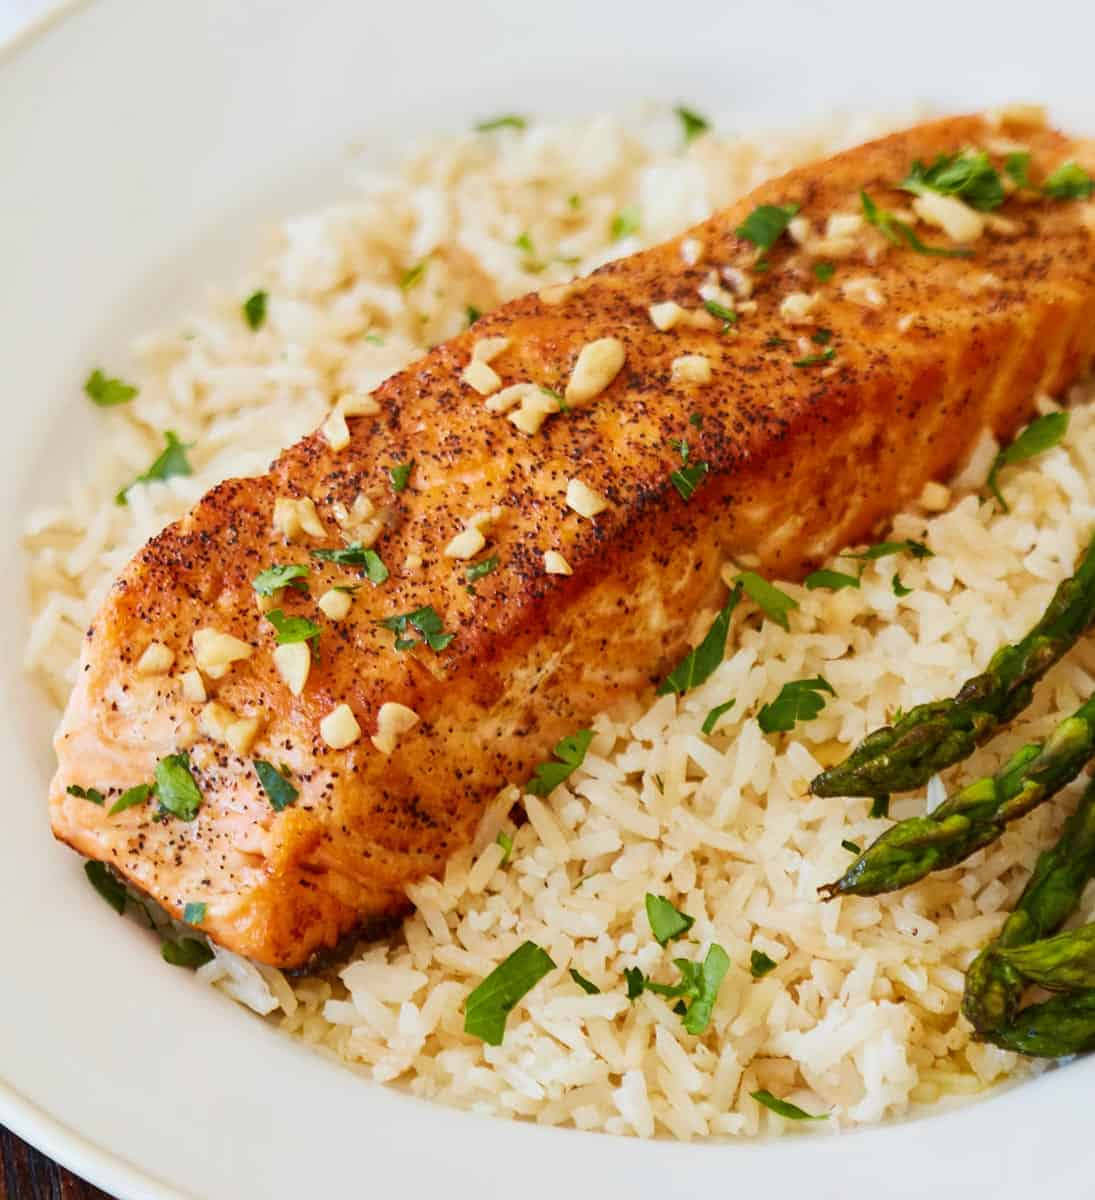 Skillet Salmon in Lemon Butter over bed of brown rice and side of asparagus on white plate